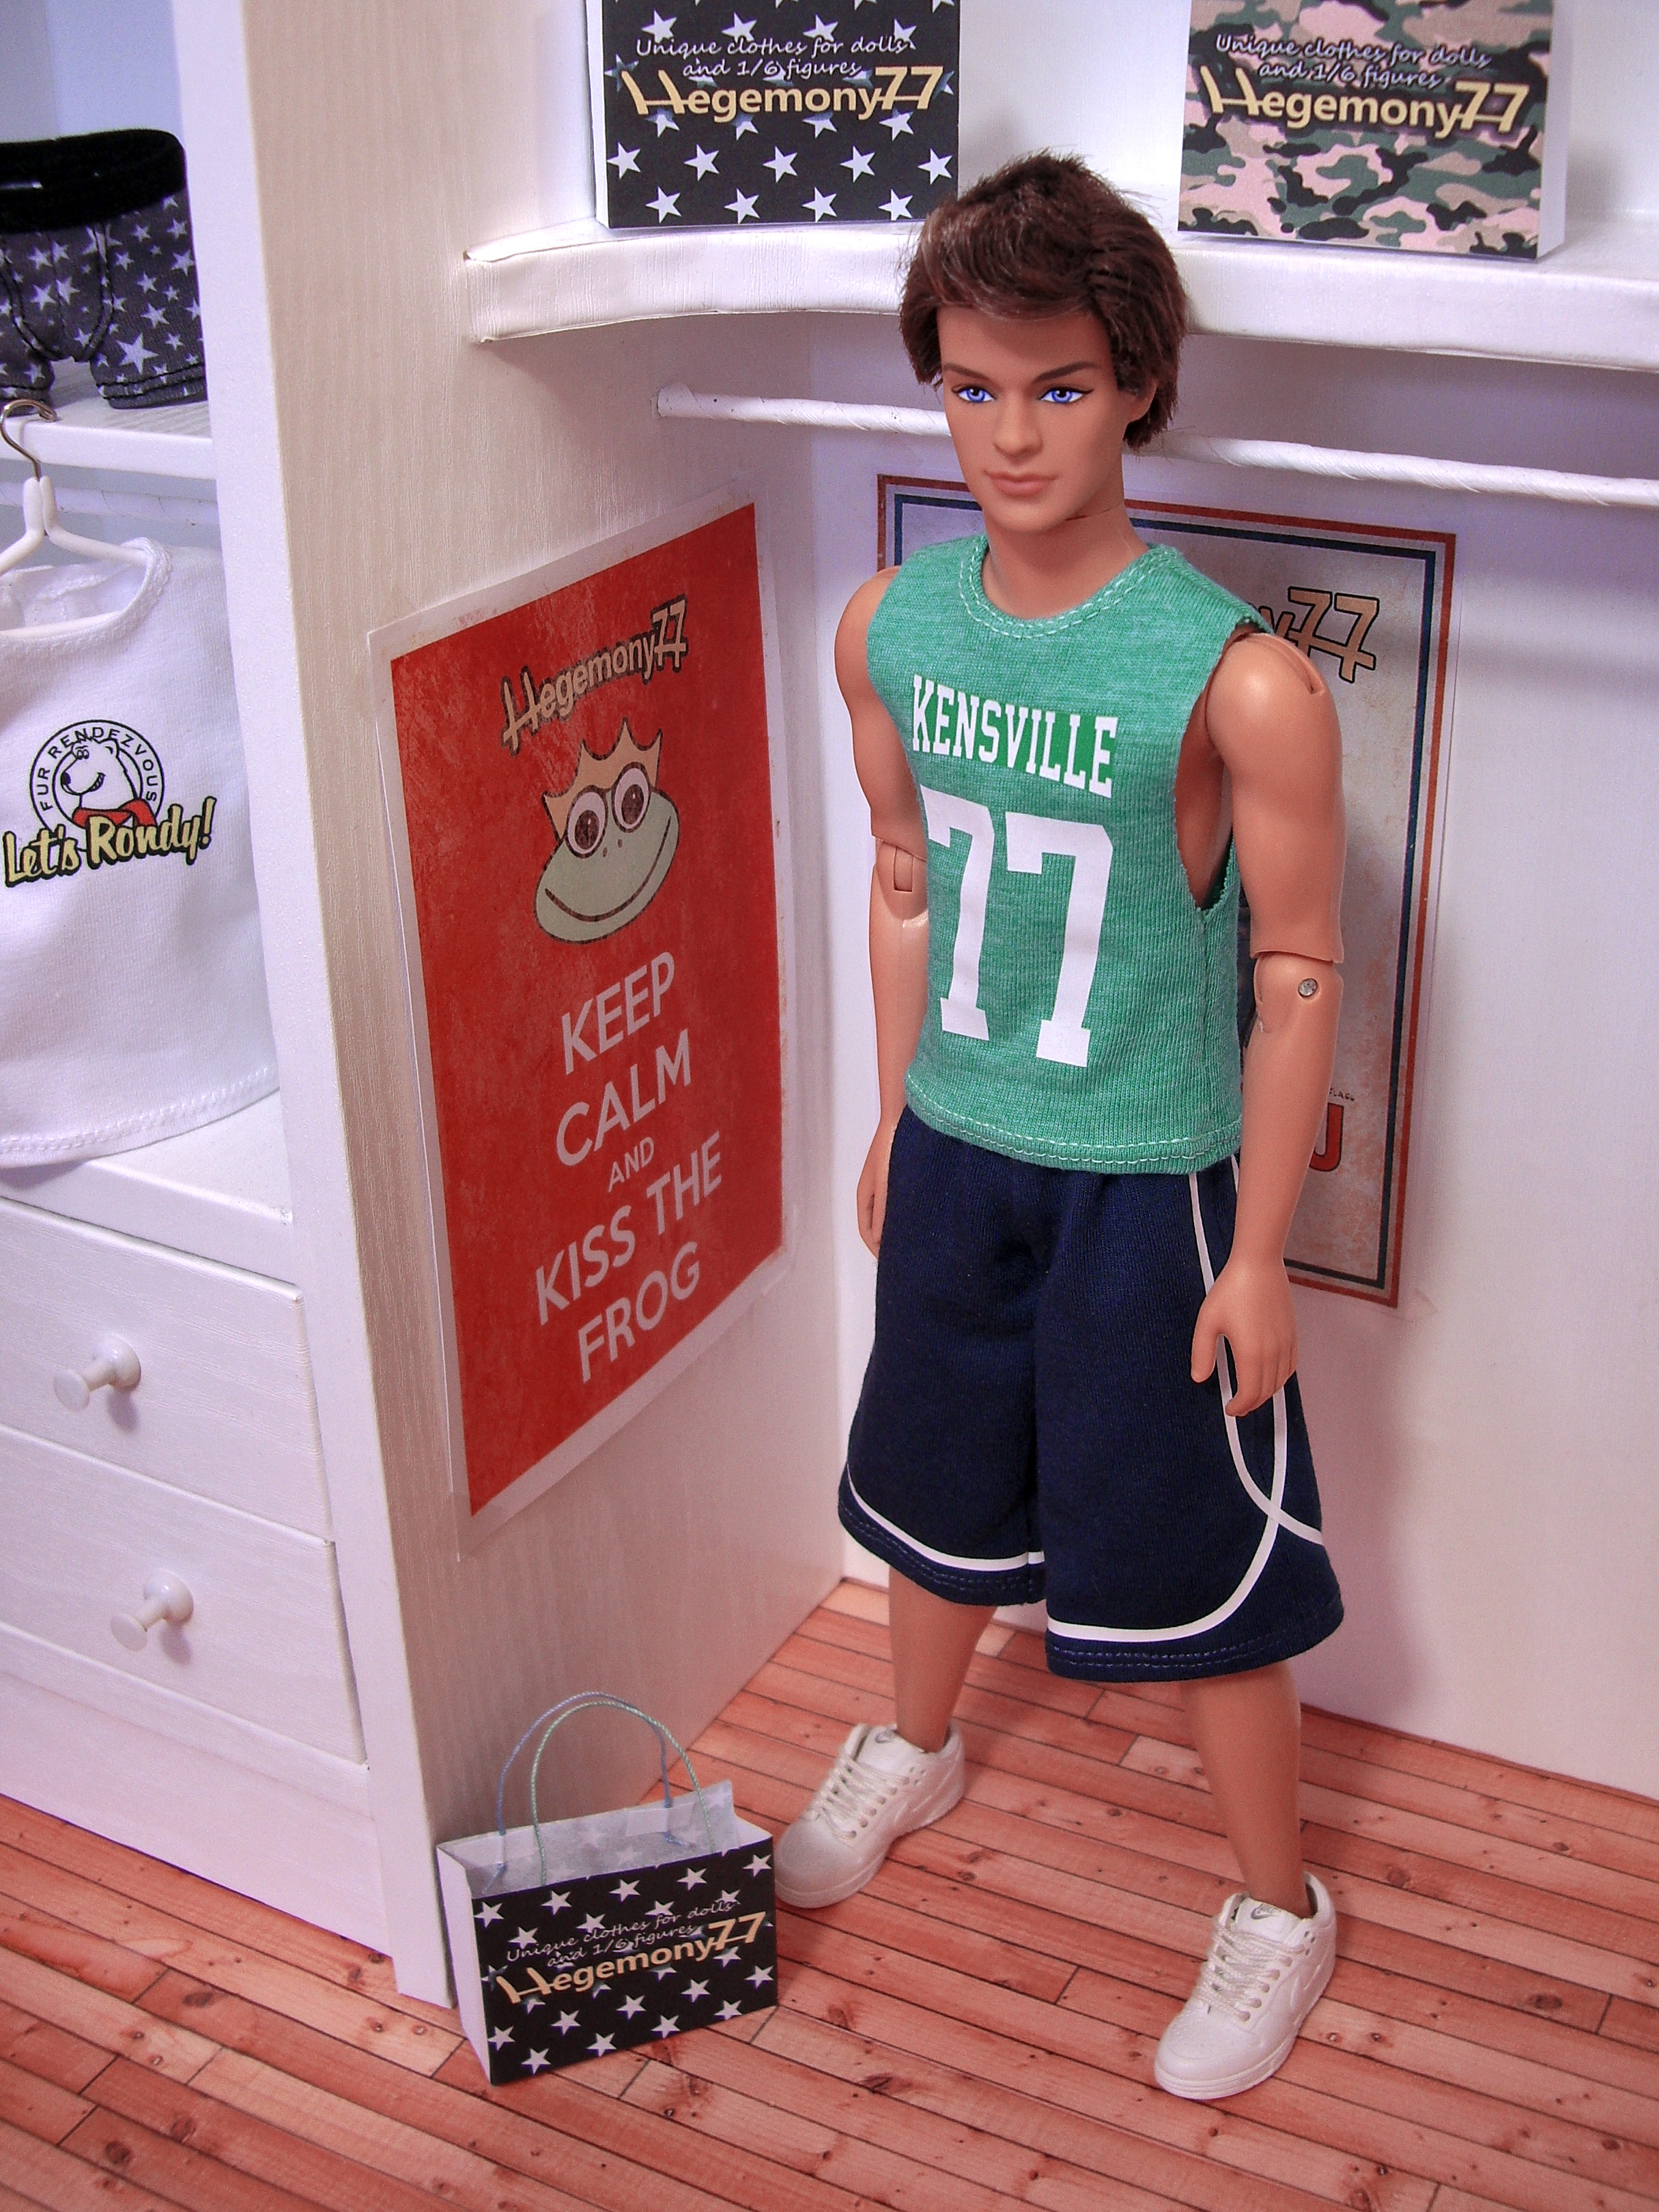 Ken doll in personalized custom cut off shirt and basketball,NBAJERSEYS_RPOMIAK309,1:6 scale personalized custom doll clothes and photo made by Hegemony77